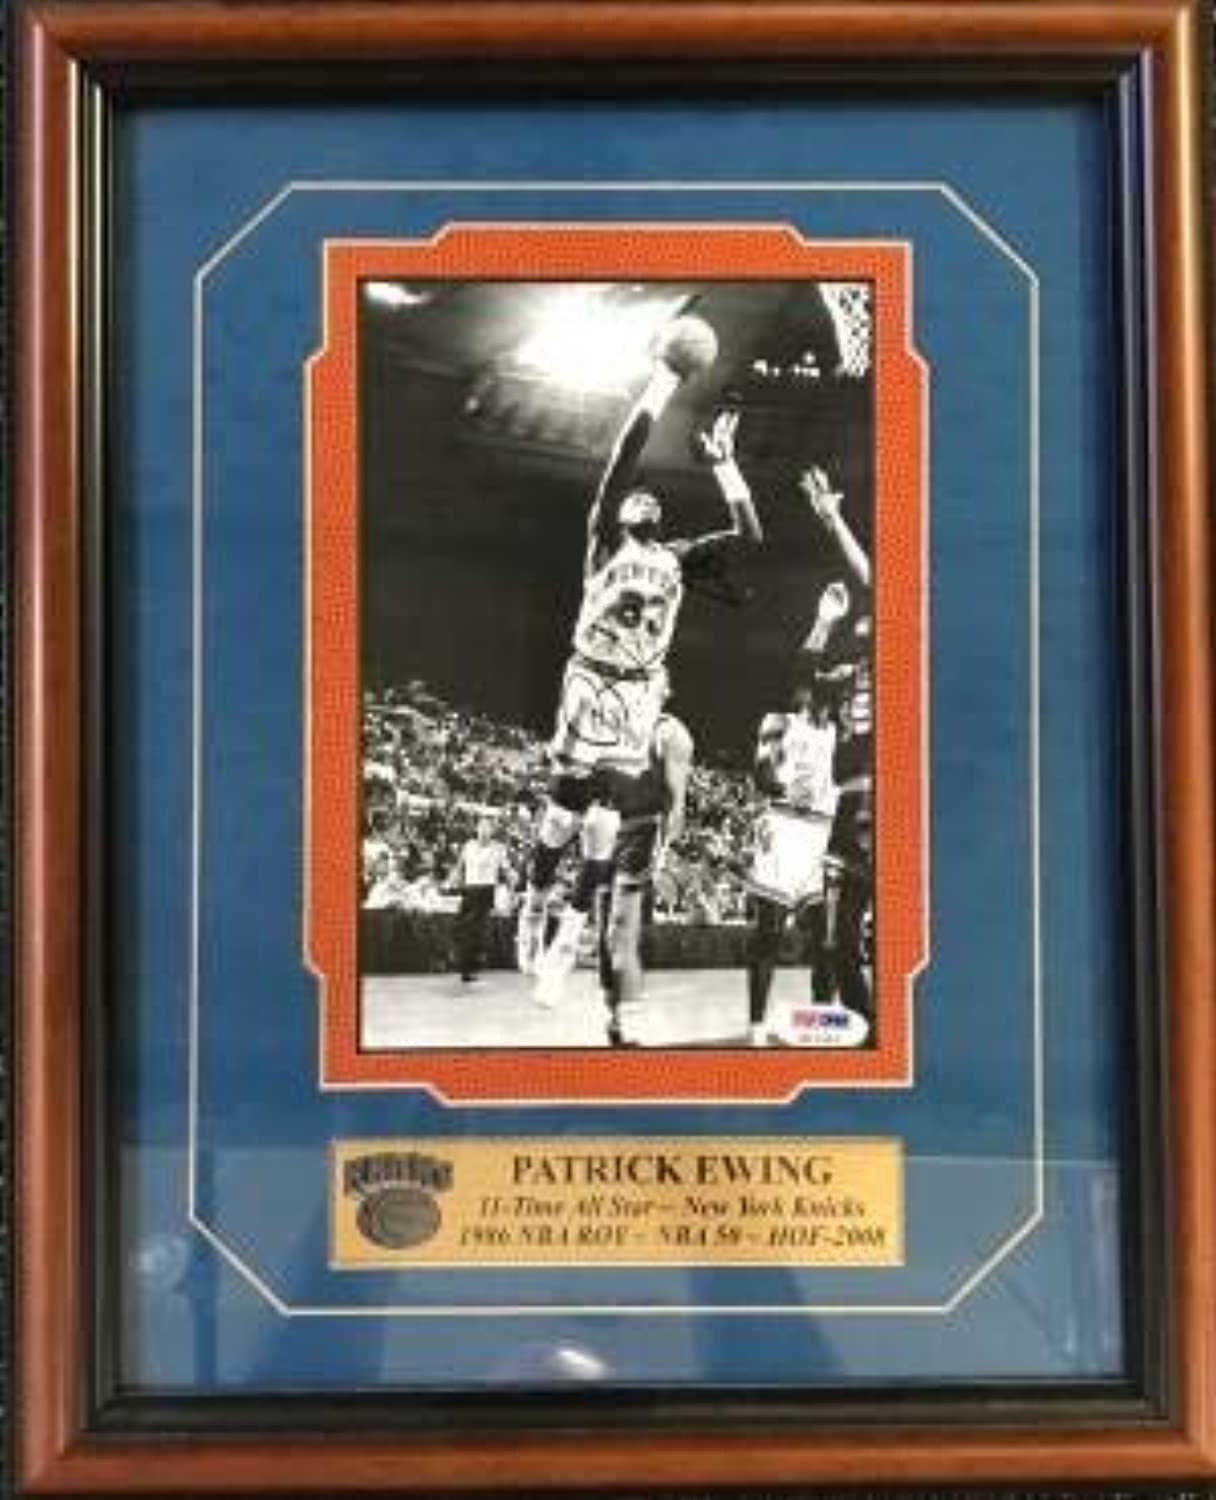 Patrick Ewing Autographed New York Knicks Basketball Framed 8x10 Photo (PSA DNA)  Autographed NBA Photos